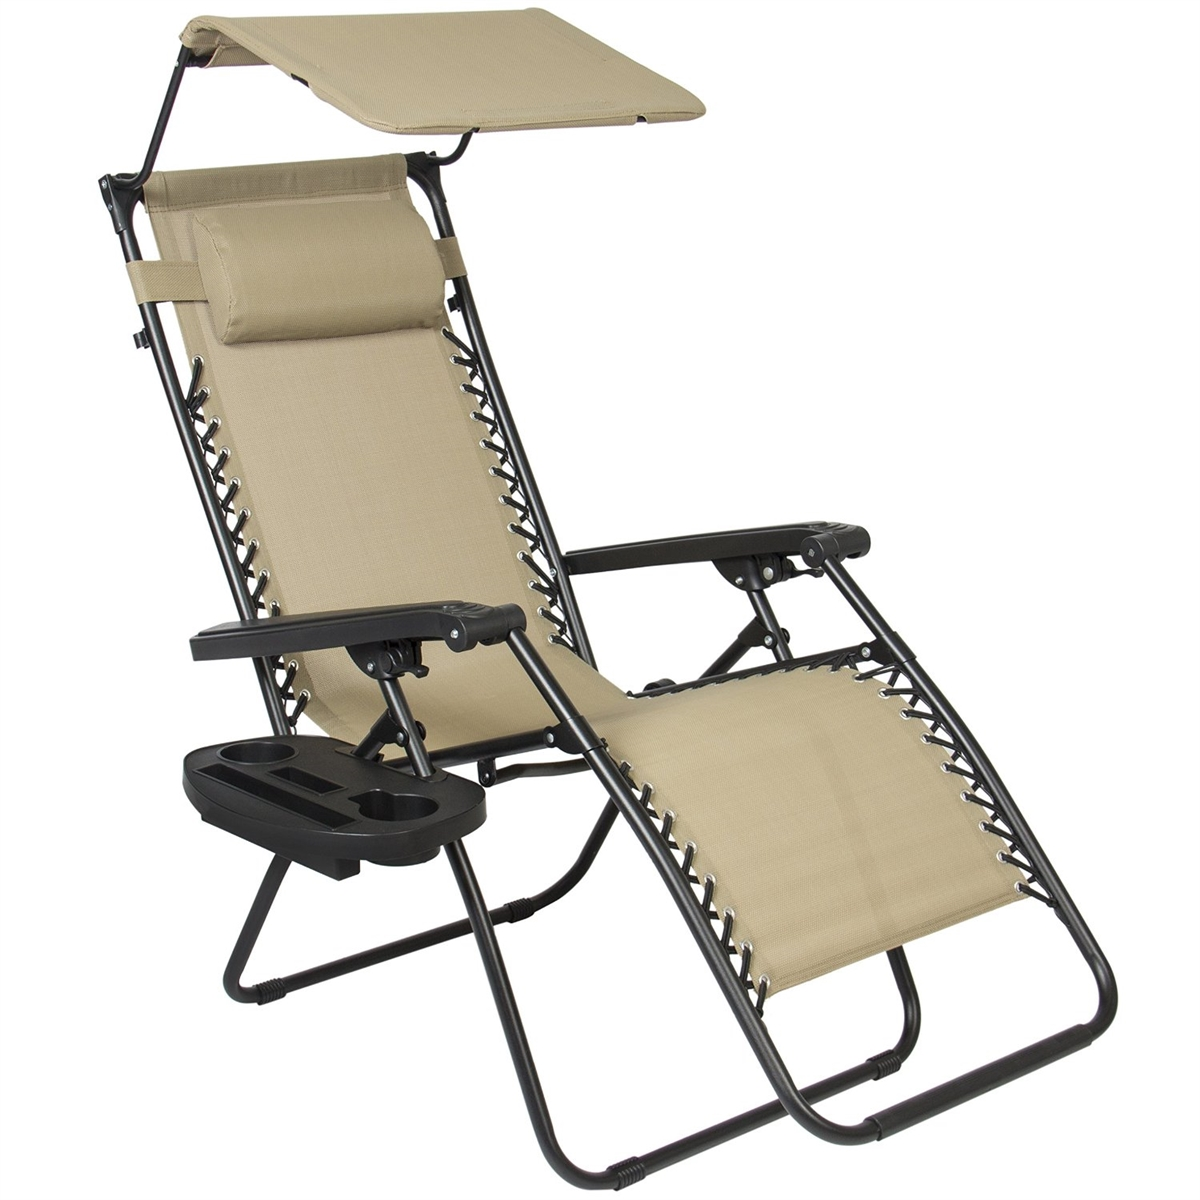 Zero-Gravity Canopy Lawn & Patio Chair with Sunshade and Cup Holder - Beige